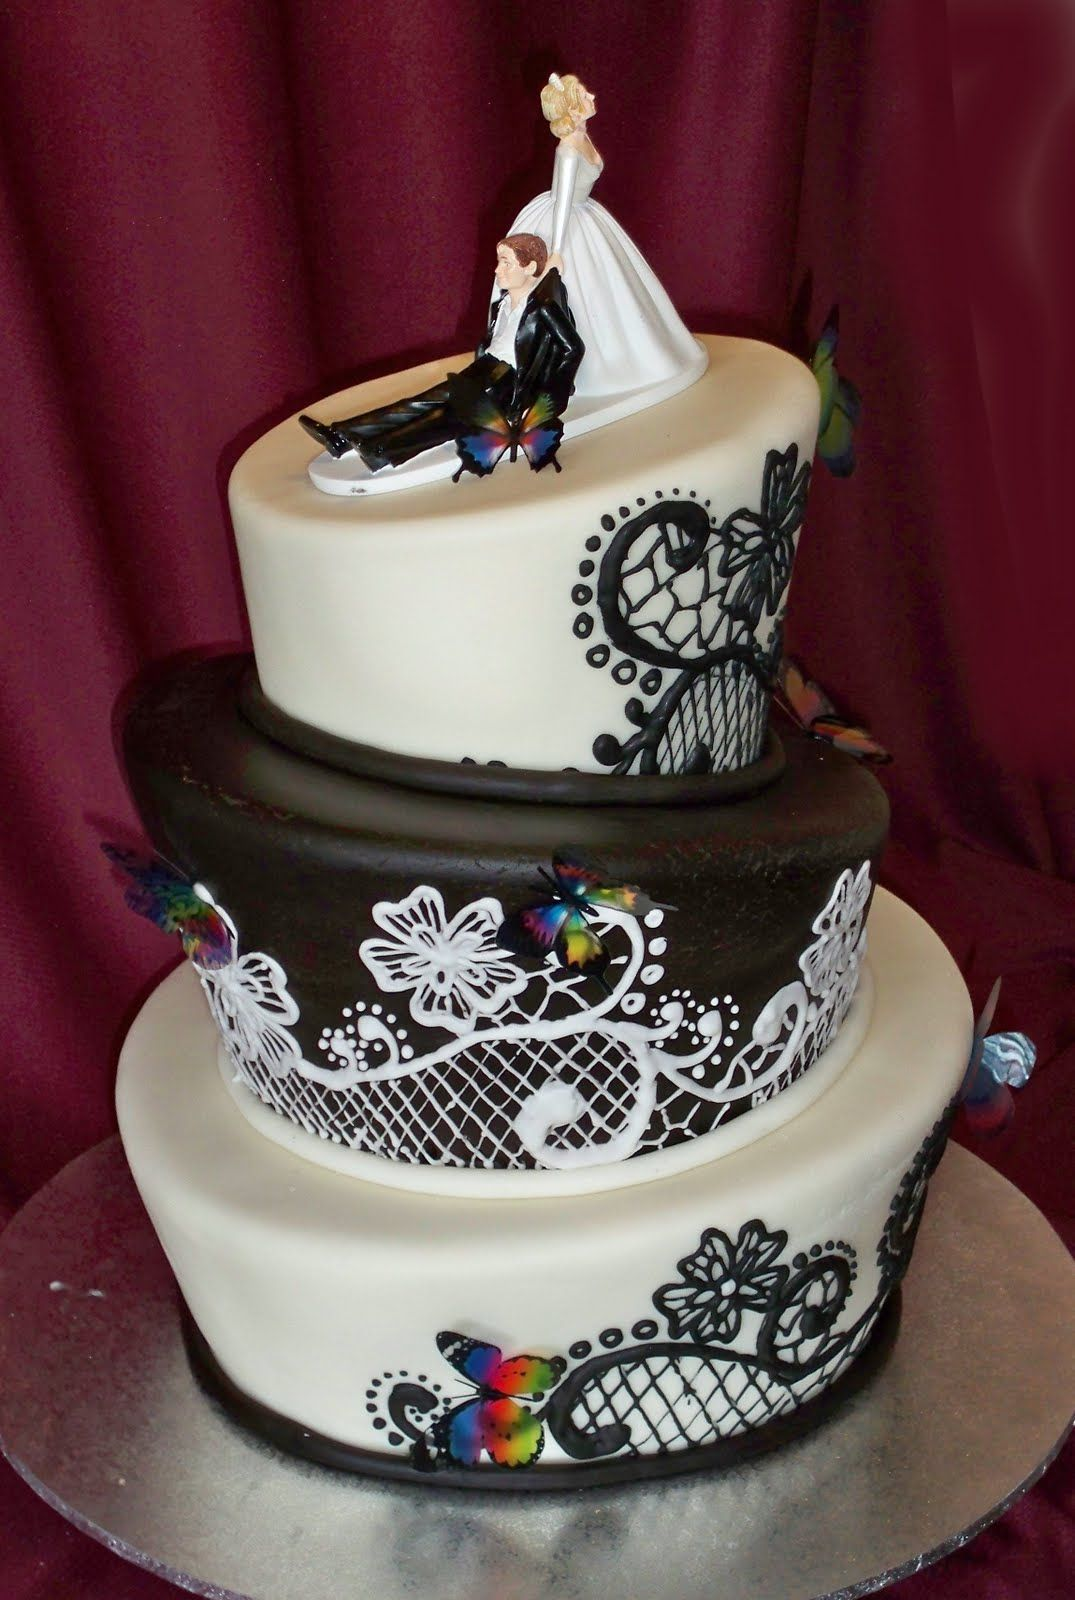 Cakes images wedding cake hd wallpaper and background photos - Image For Cake Boss Wedding Cakes Background Wallpaper